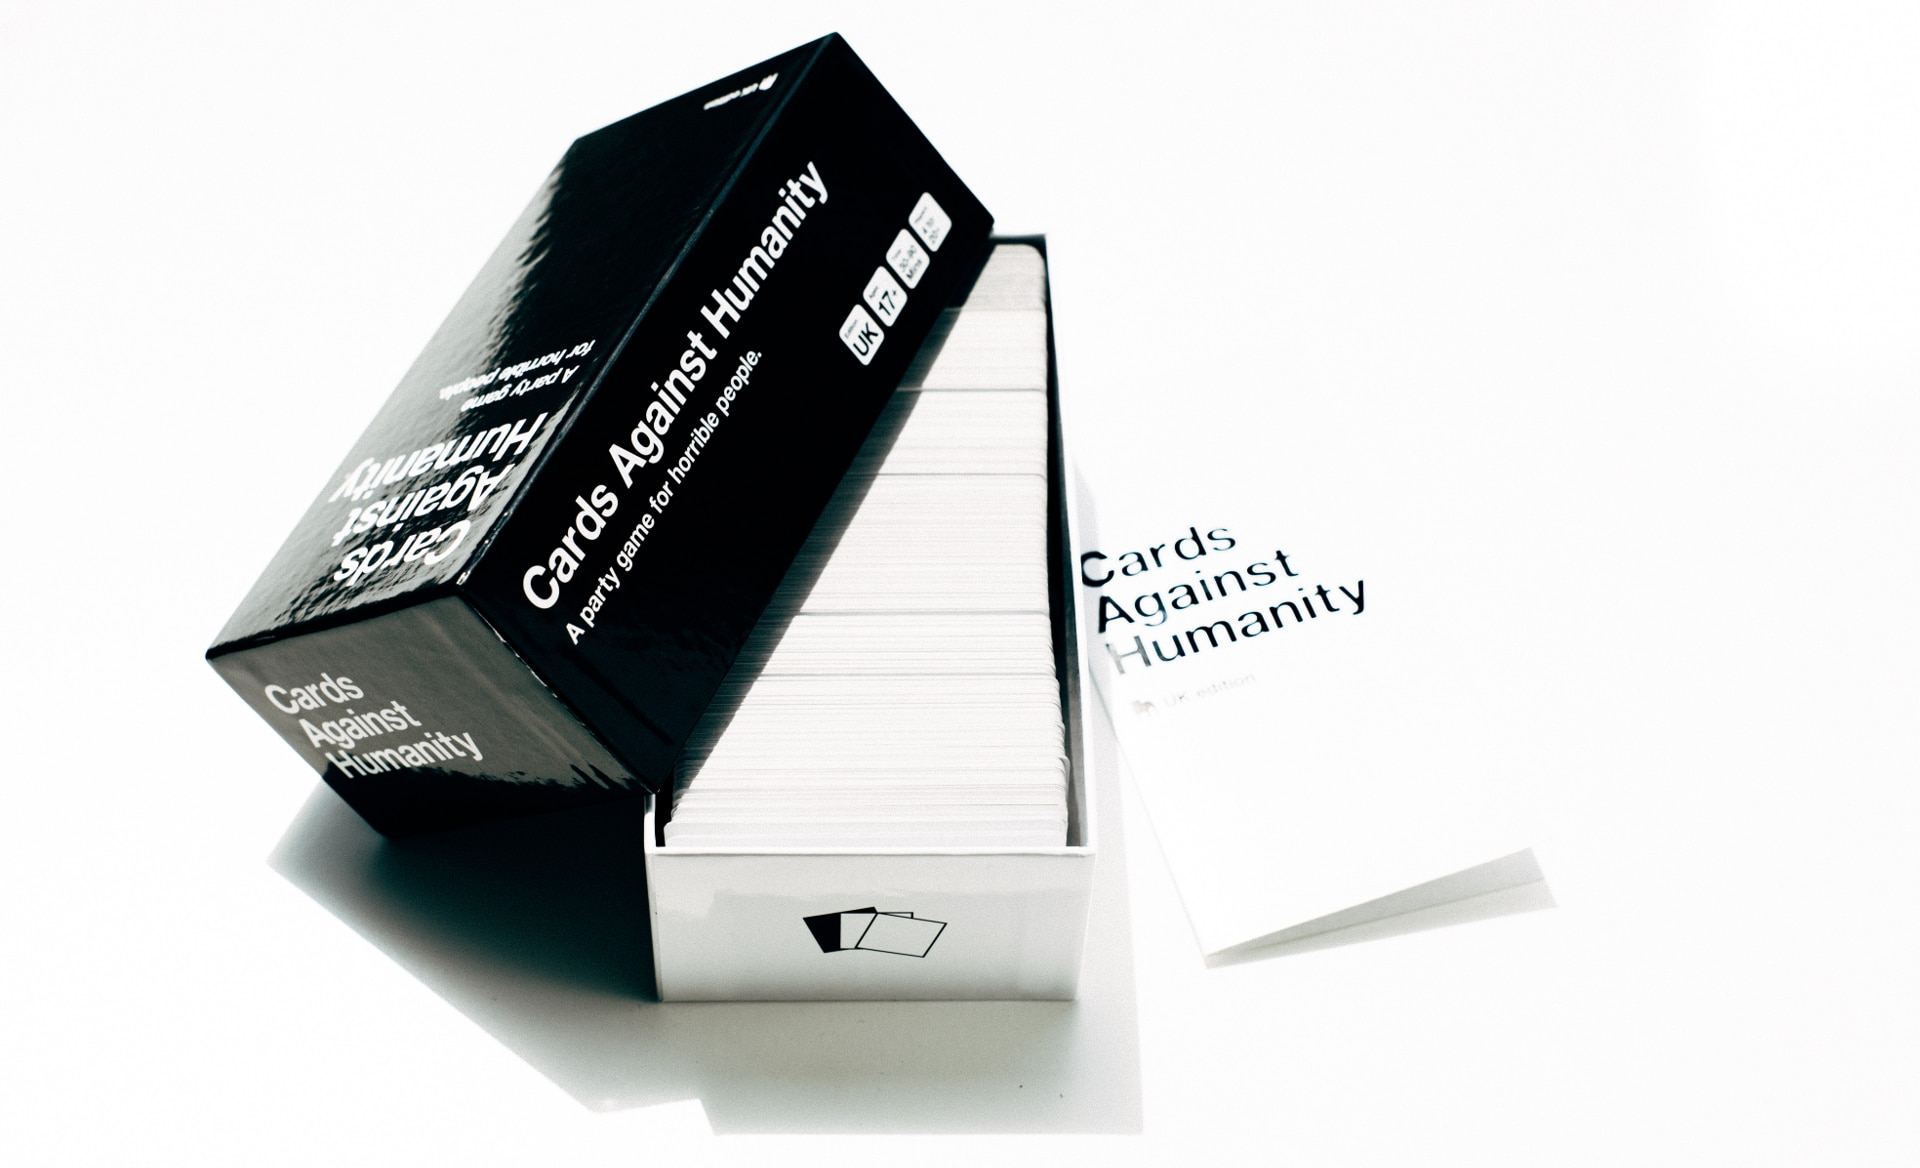 Cards Against Humanity kaufen